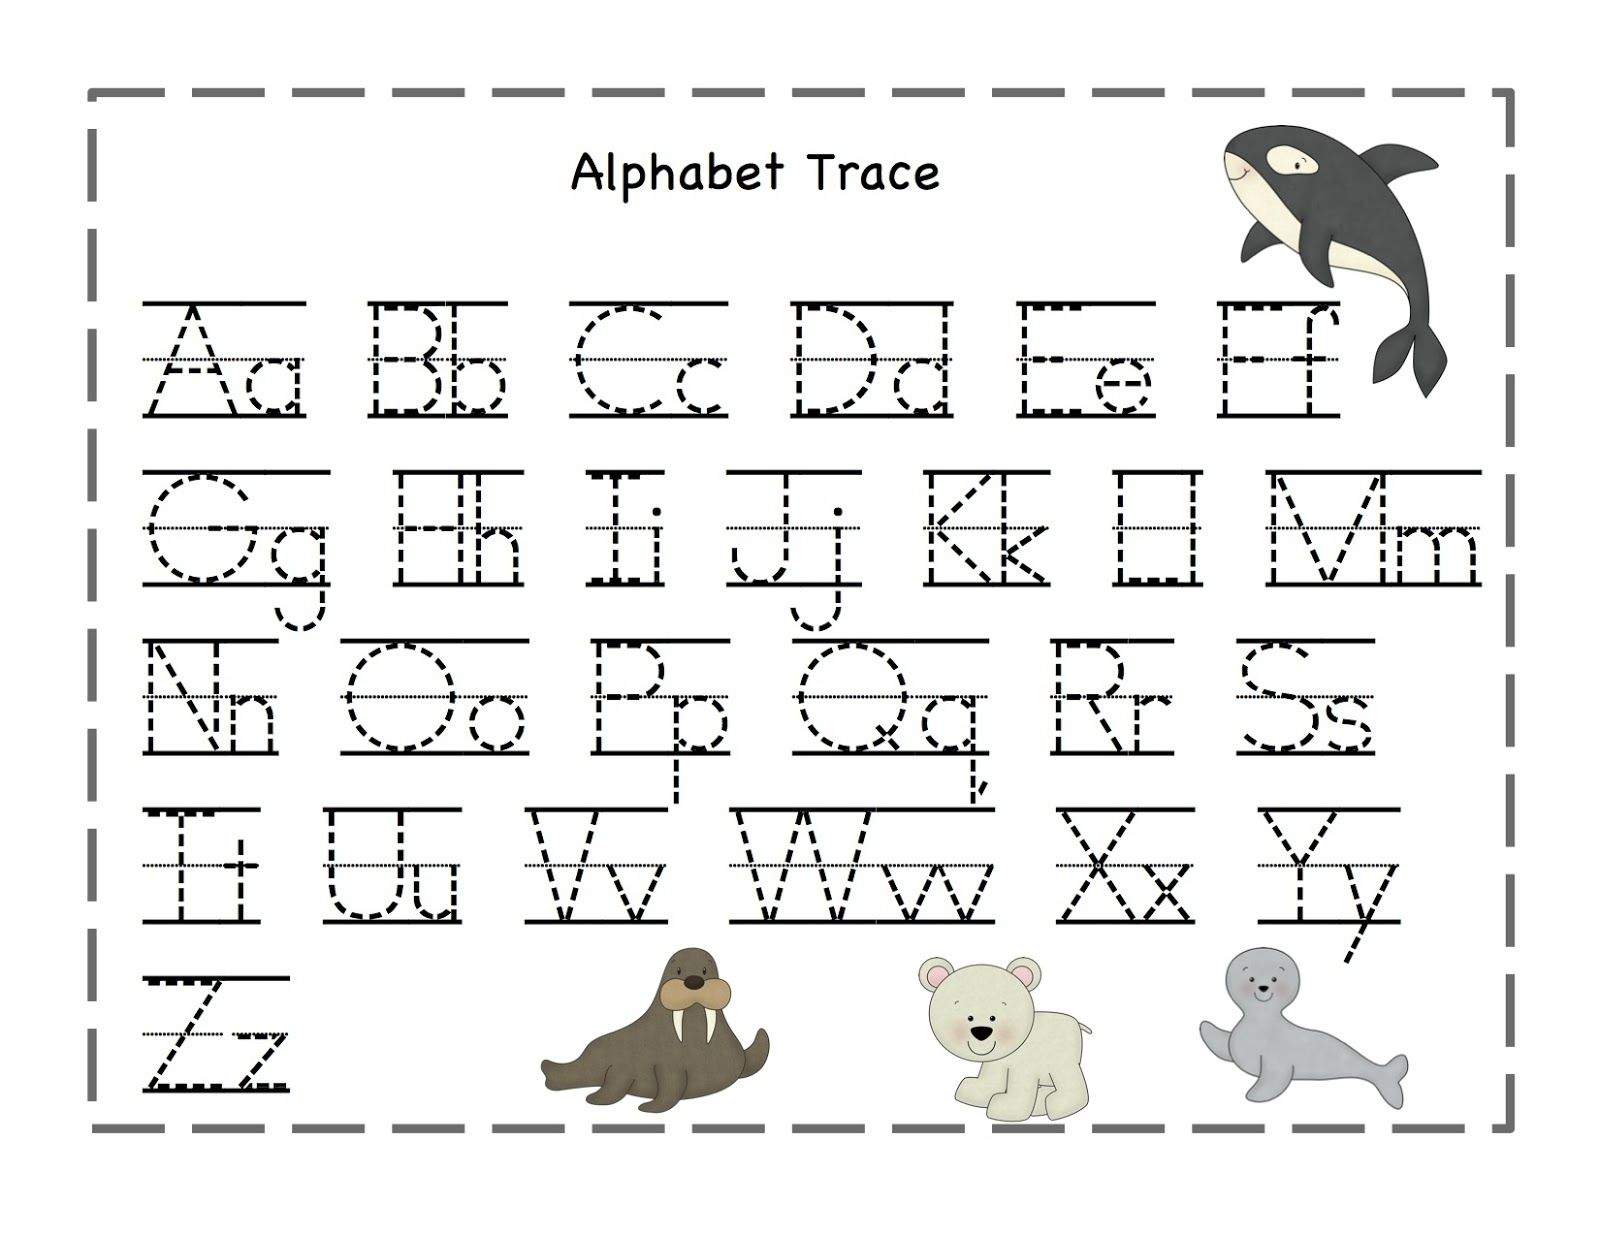 preschool printables arctic freeze printable alphabet alphabet tracing abc tracing. Black Bedroom Furniture Sets. Home Design Ideas